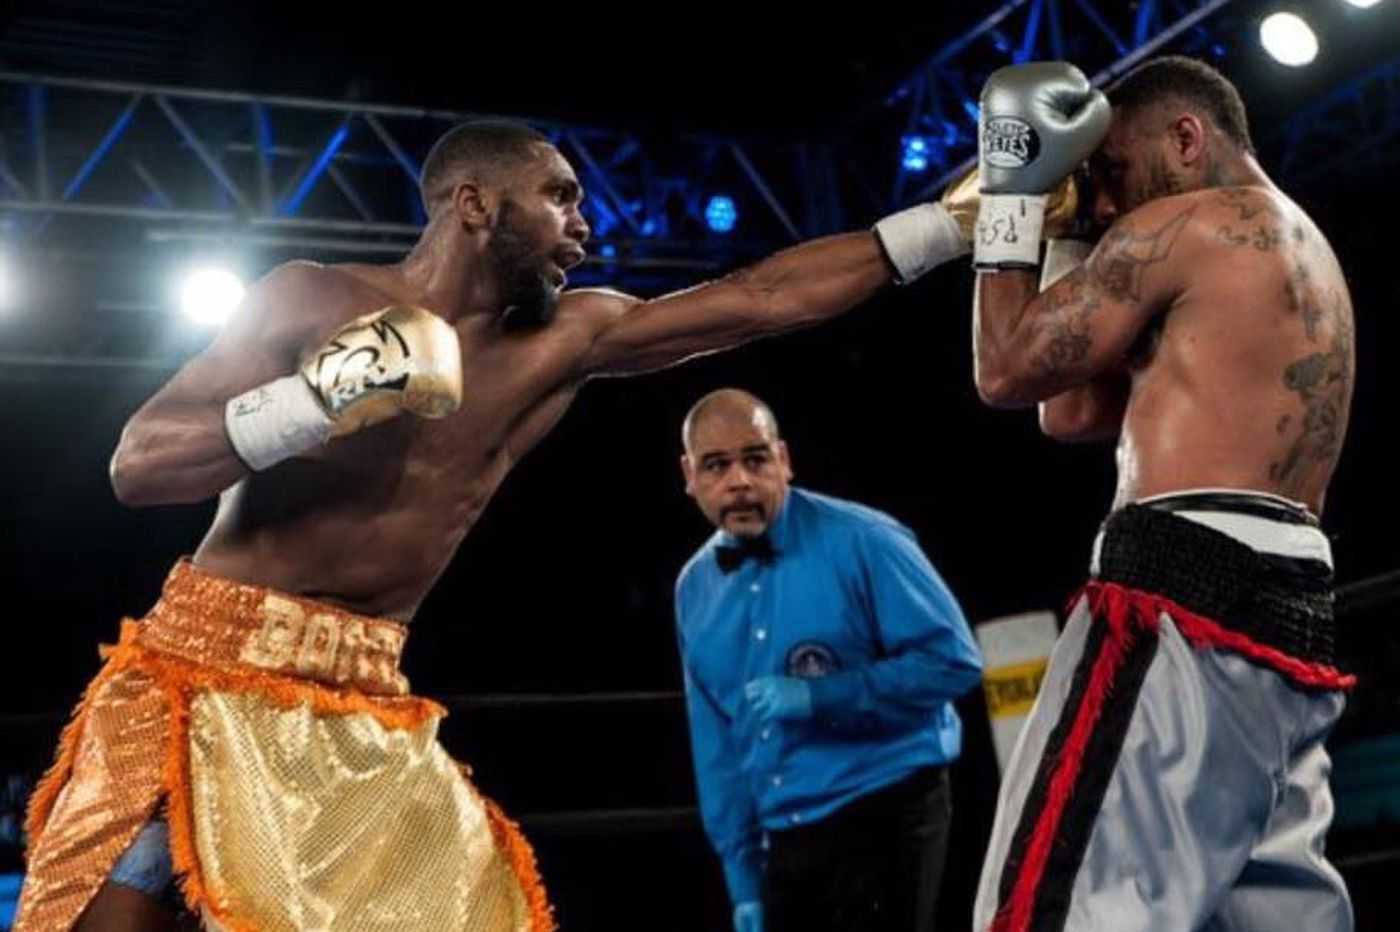 Philly welterweight boxer Jaron Ennis set to take on Raymond Serrano in battle of Philadelphia fighters